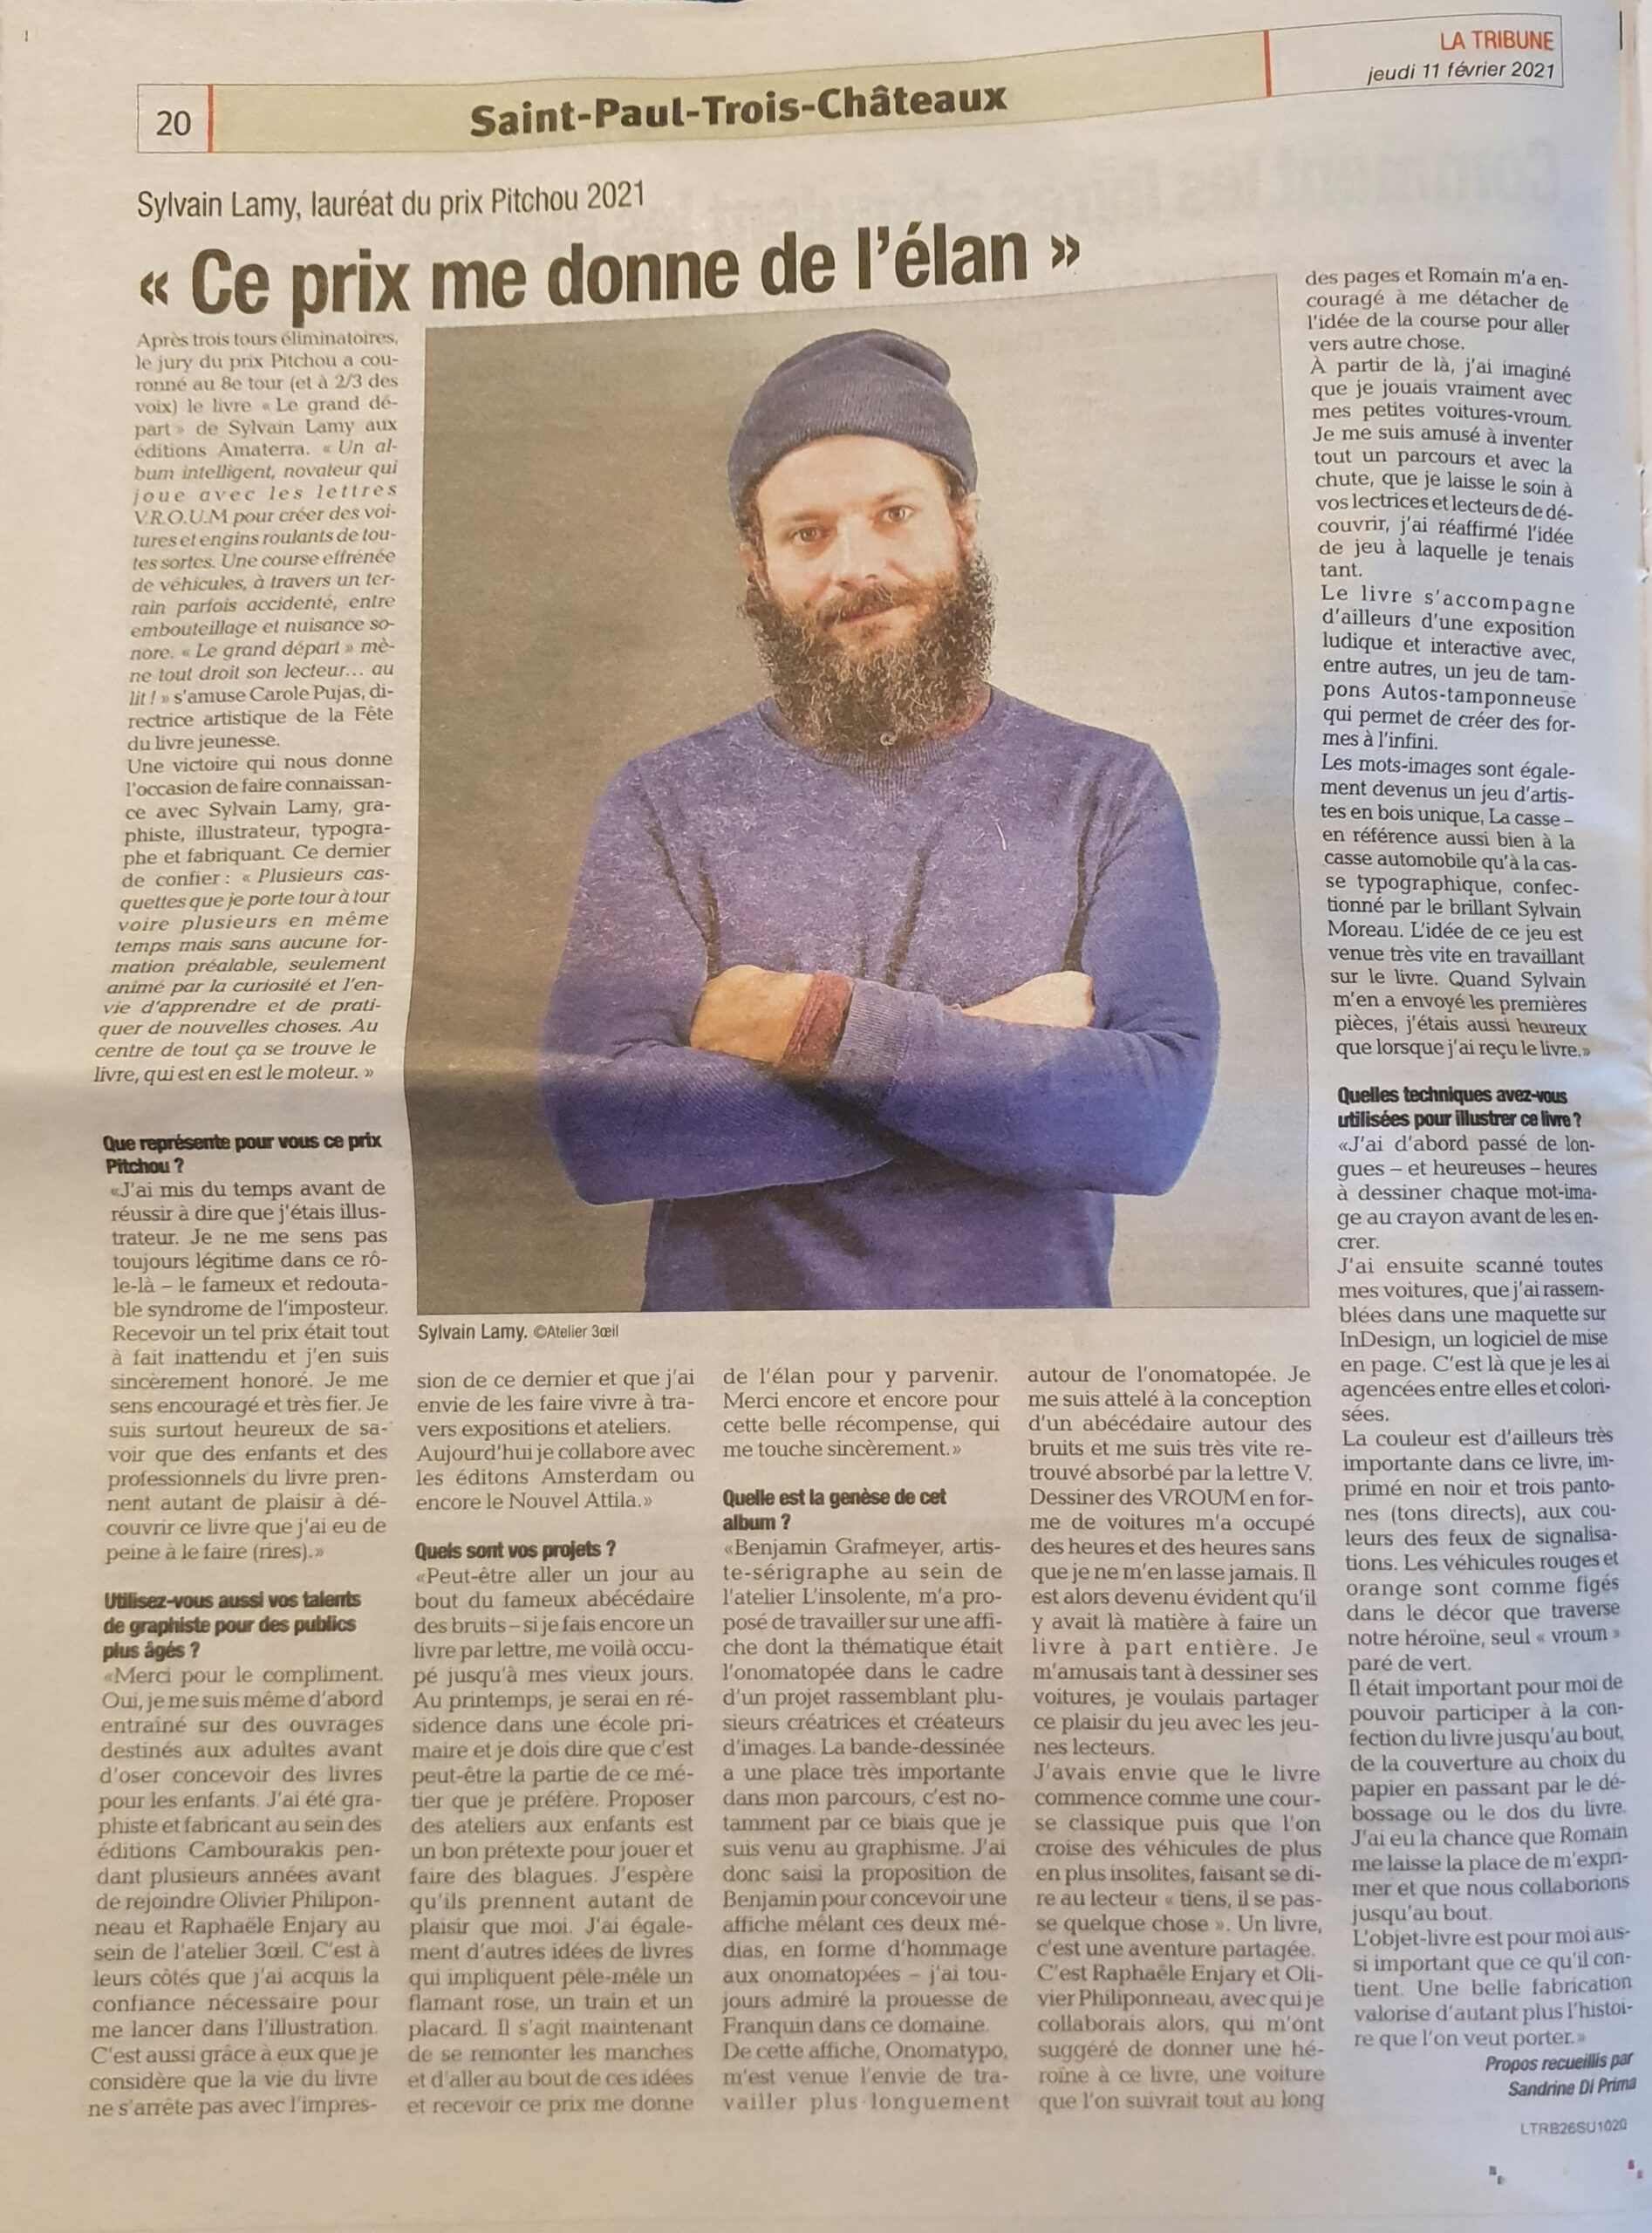 La tribune - interview prix Pitchou Le Grand départ